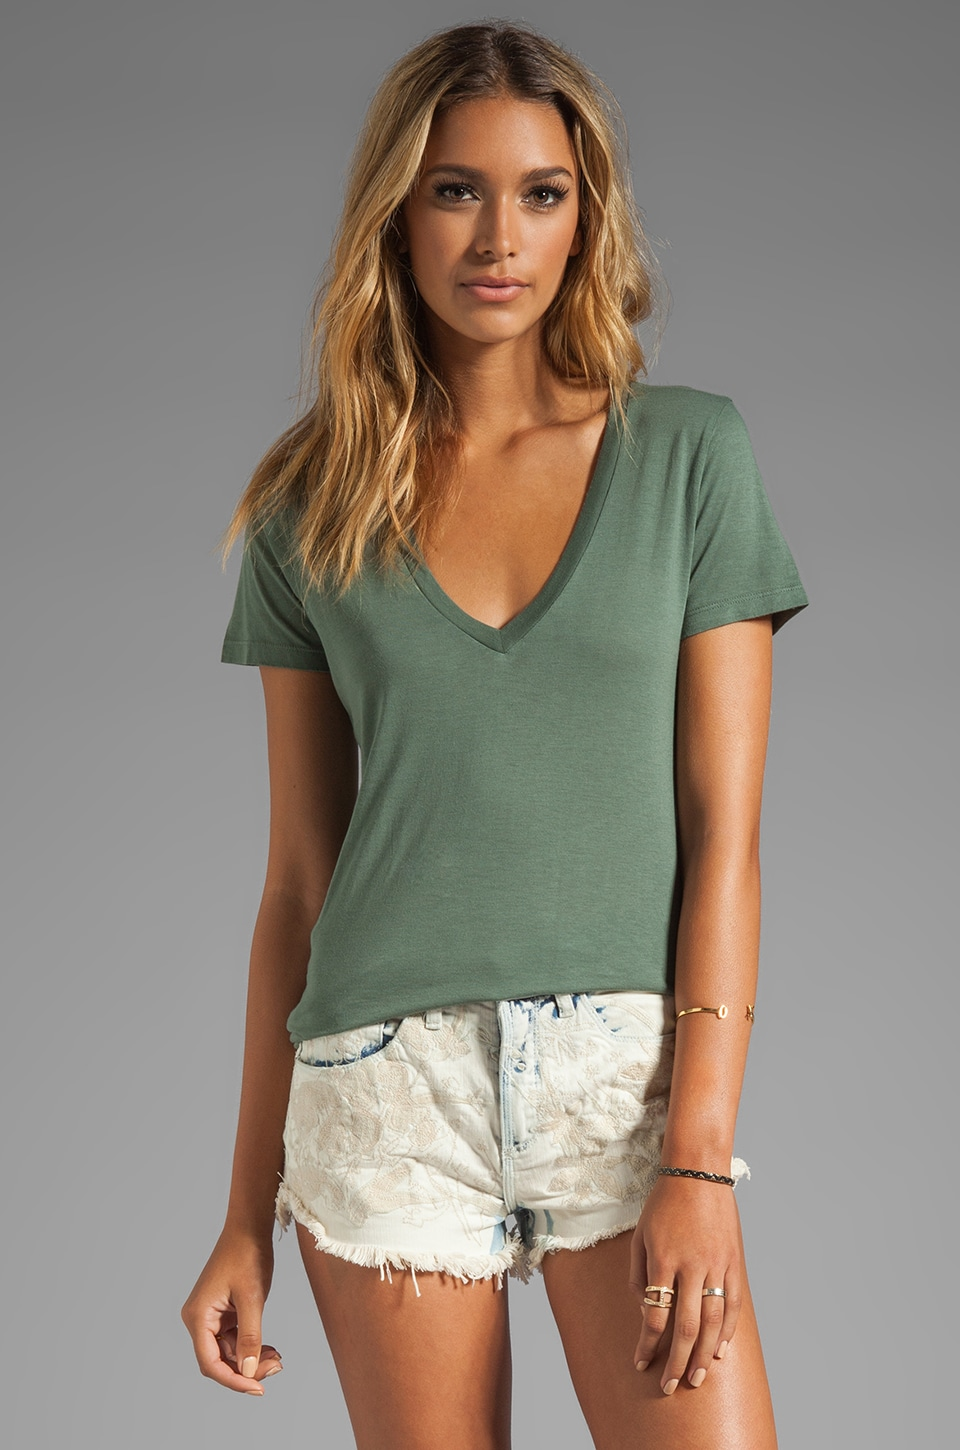 Splendid Jersey V-Neck Tee in Camo Green